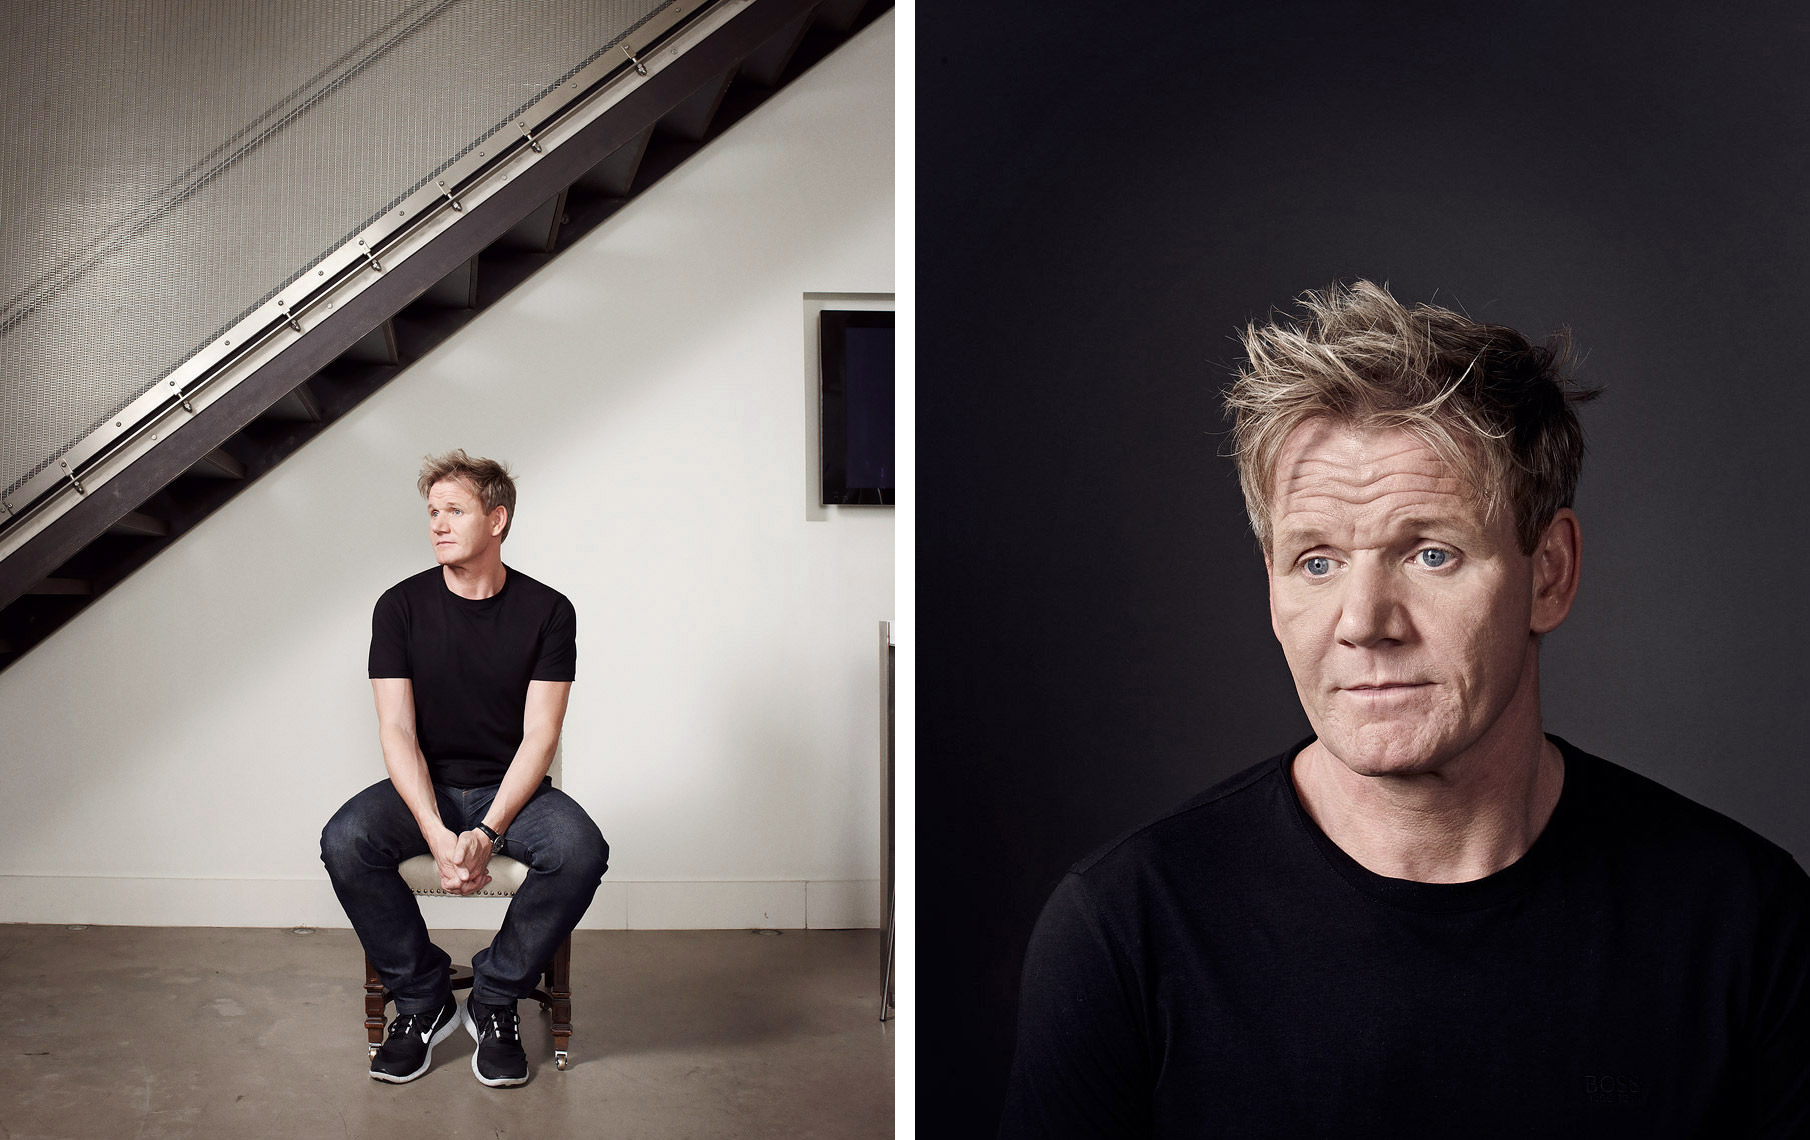 Gordon Ramsey Celebrity  Portrait Music Advertising Theatre Poster Old Vic BAFTA Trafalgar Photographer